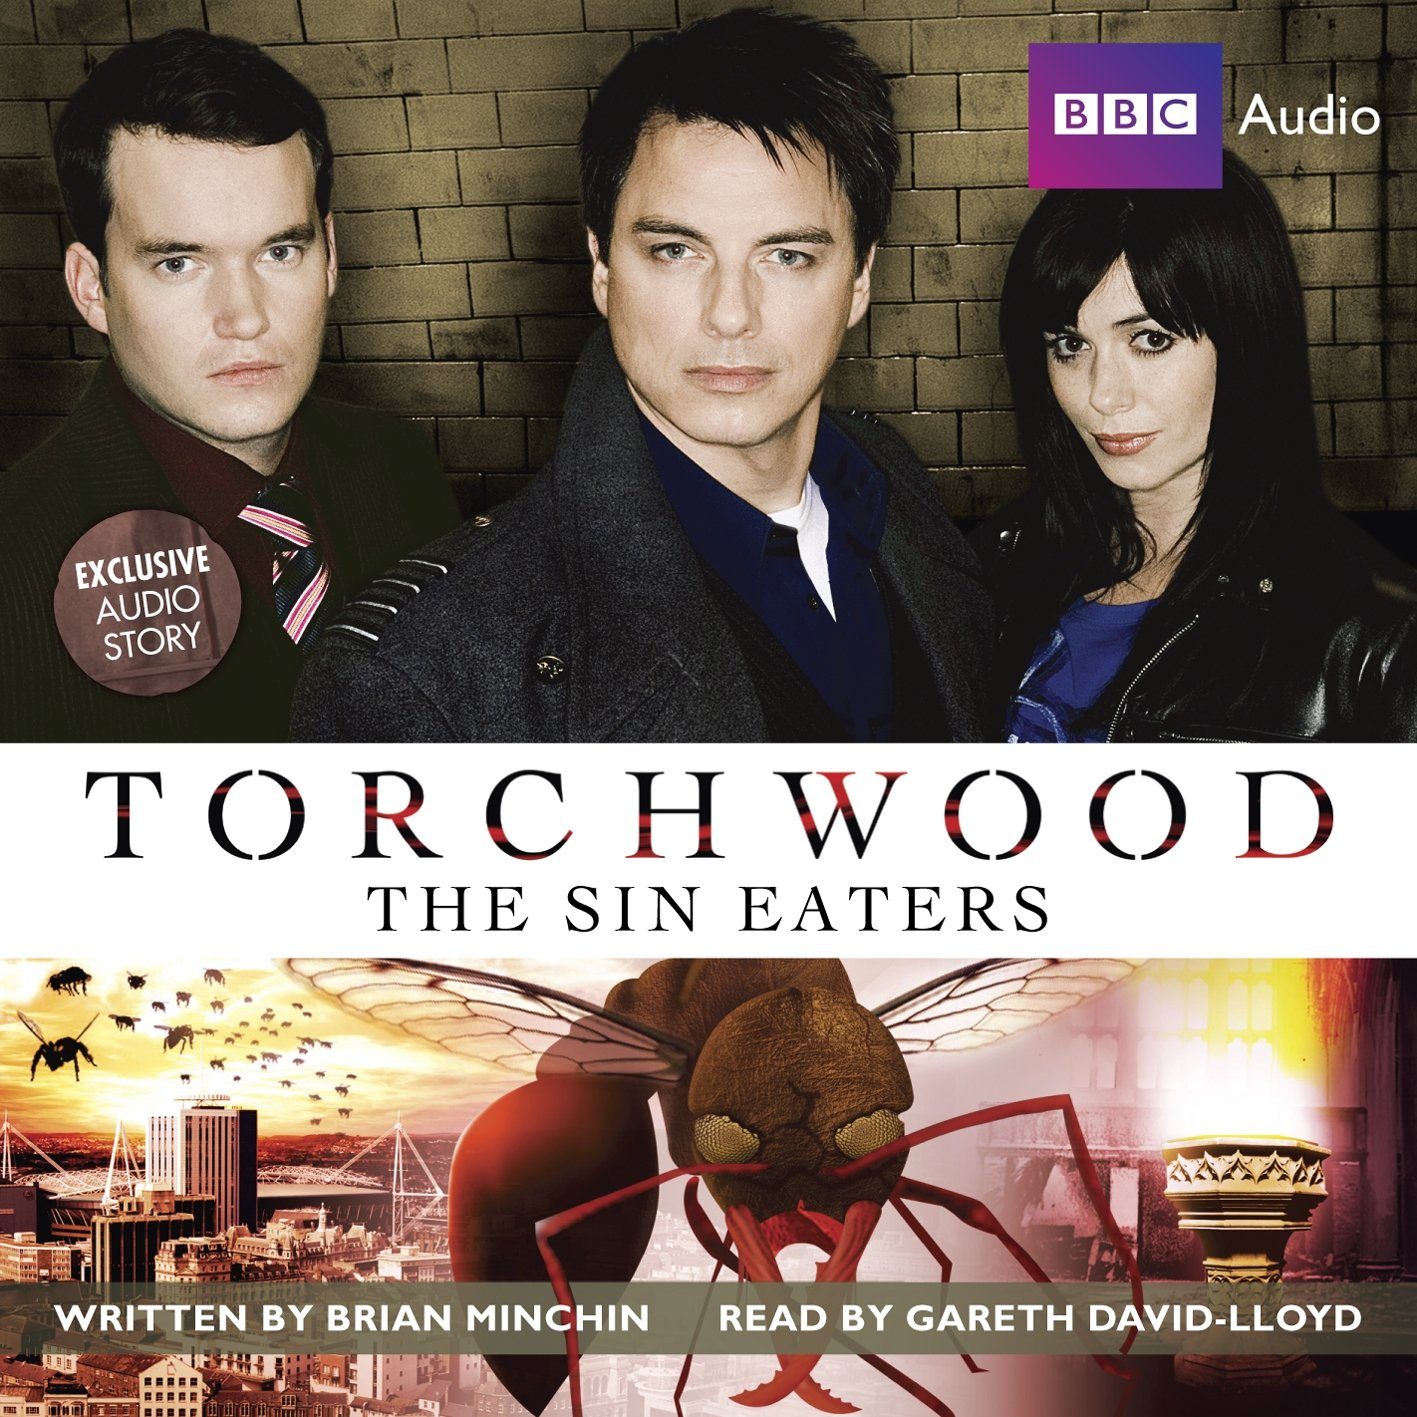 The Sin Eaters Torchwood